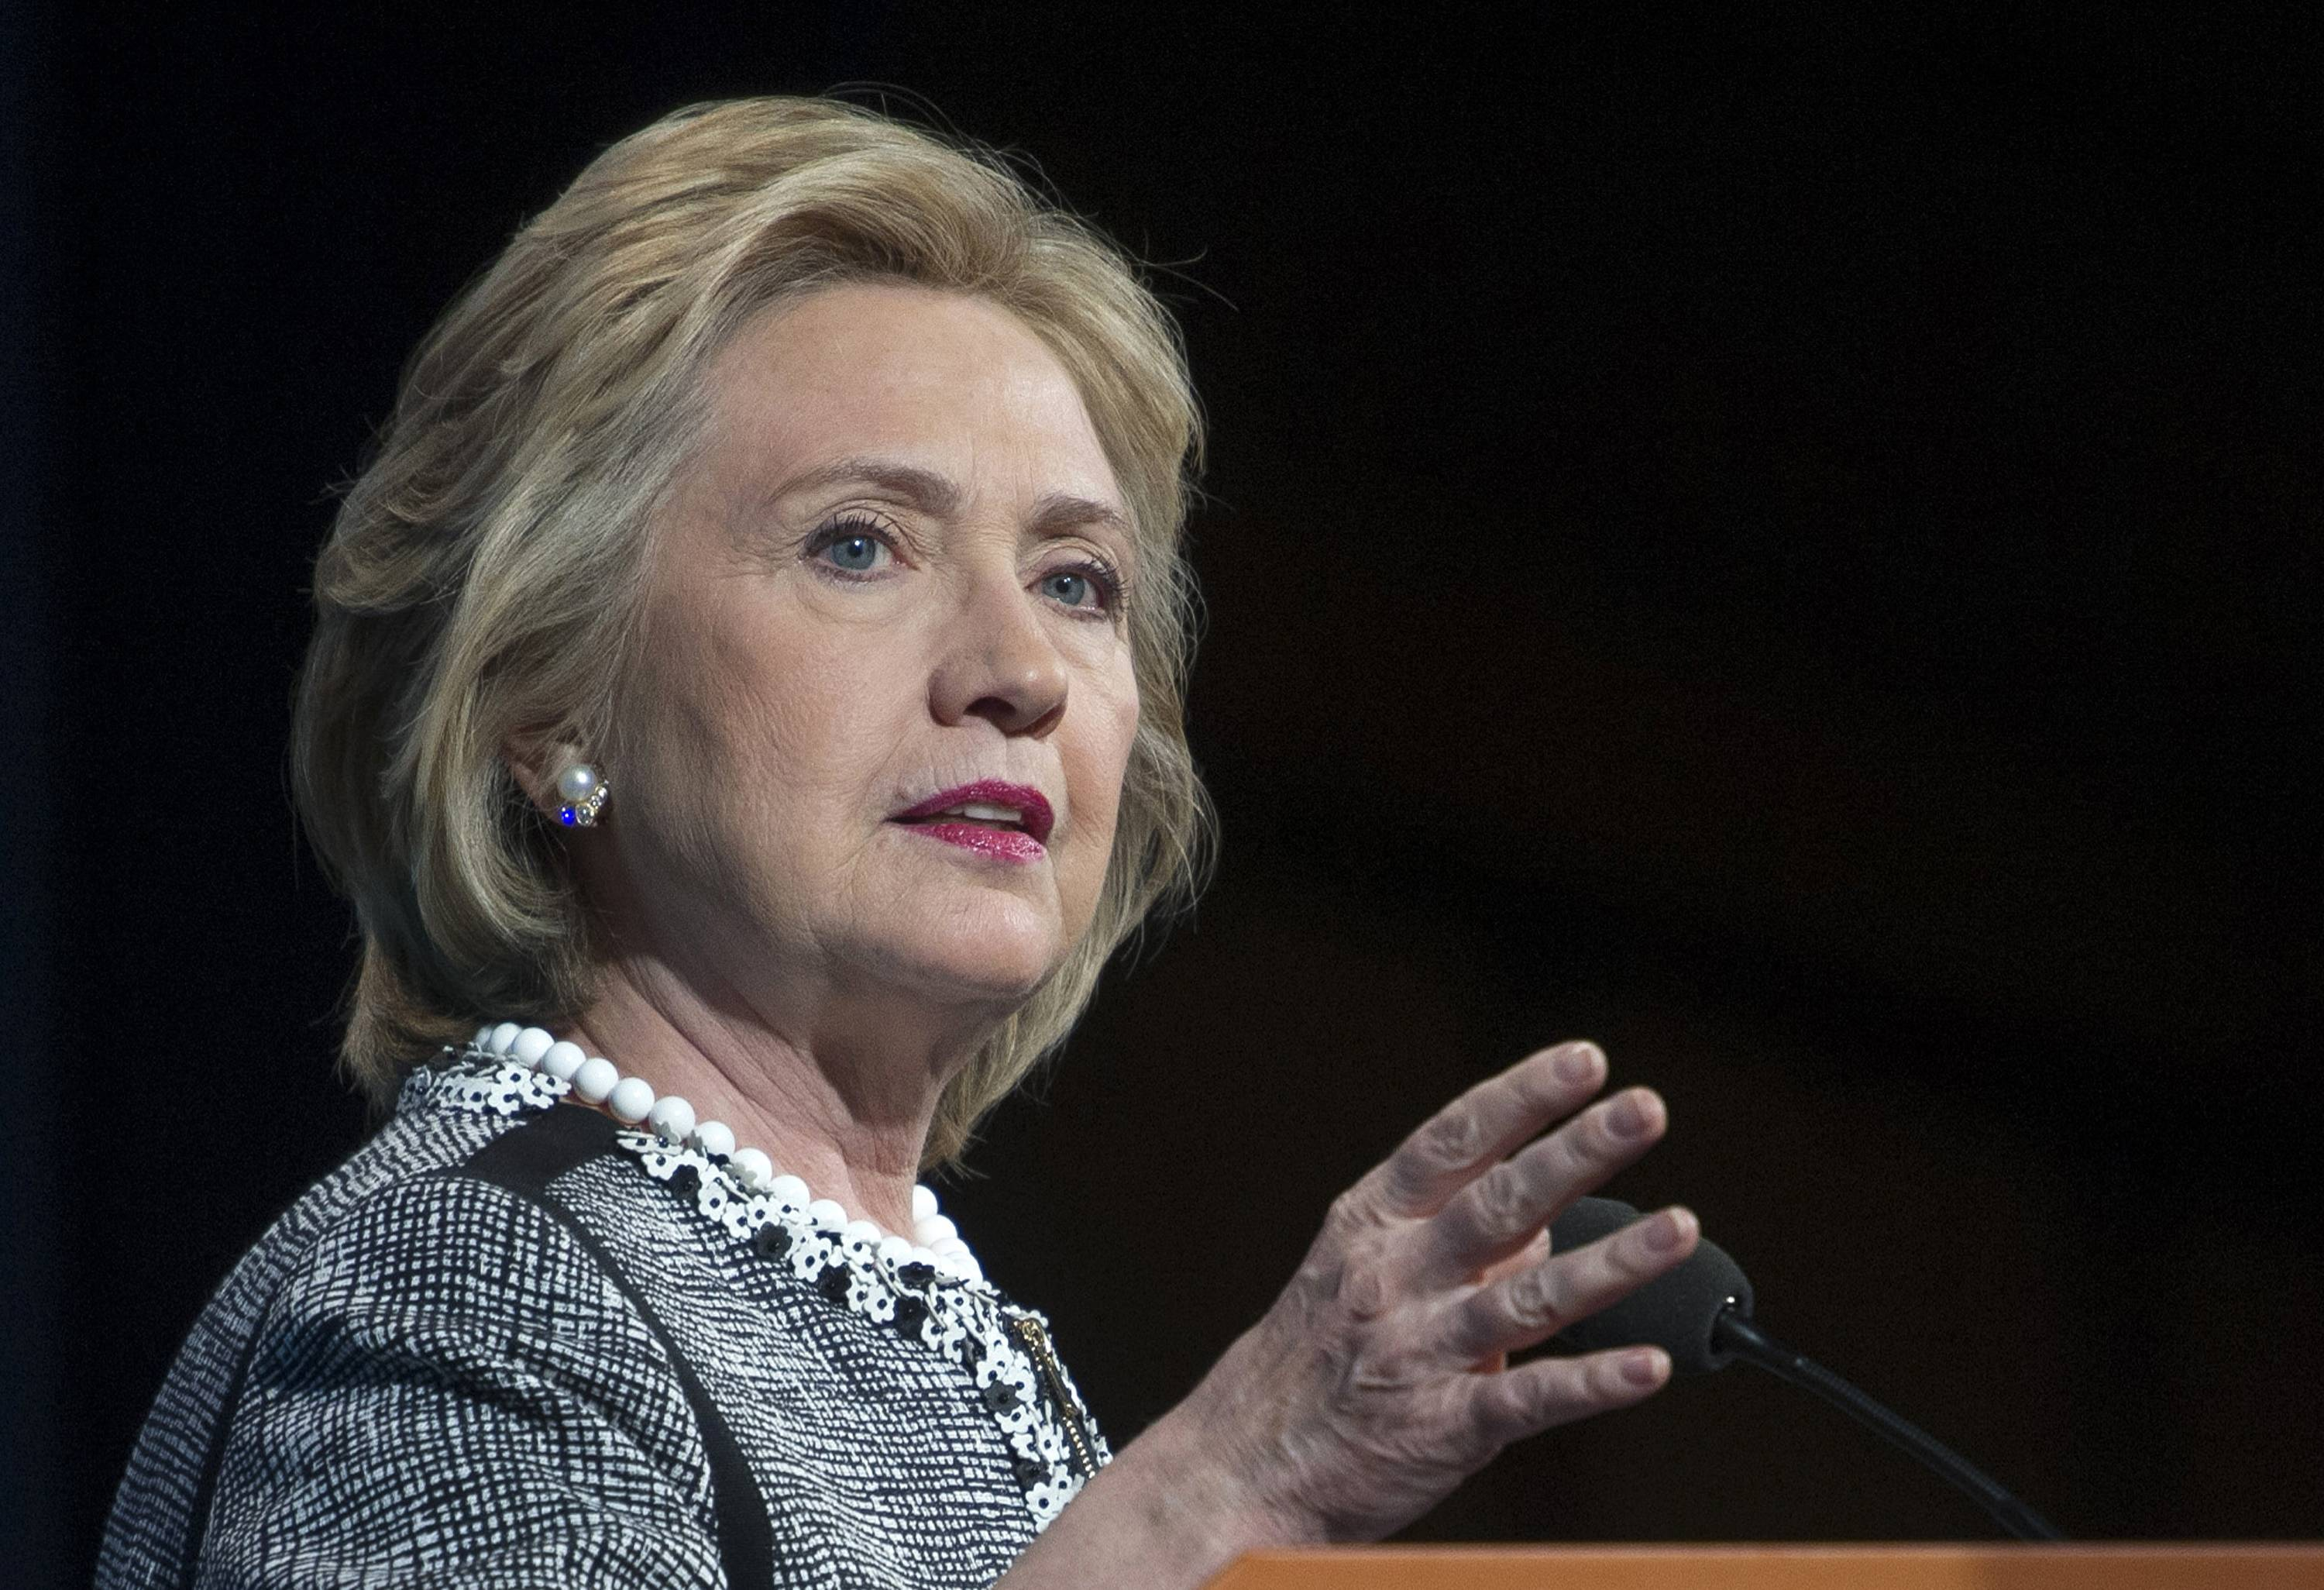 Report: Clinton defends response to Benghazi in book